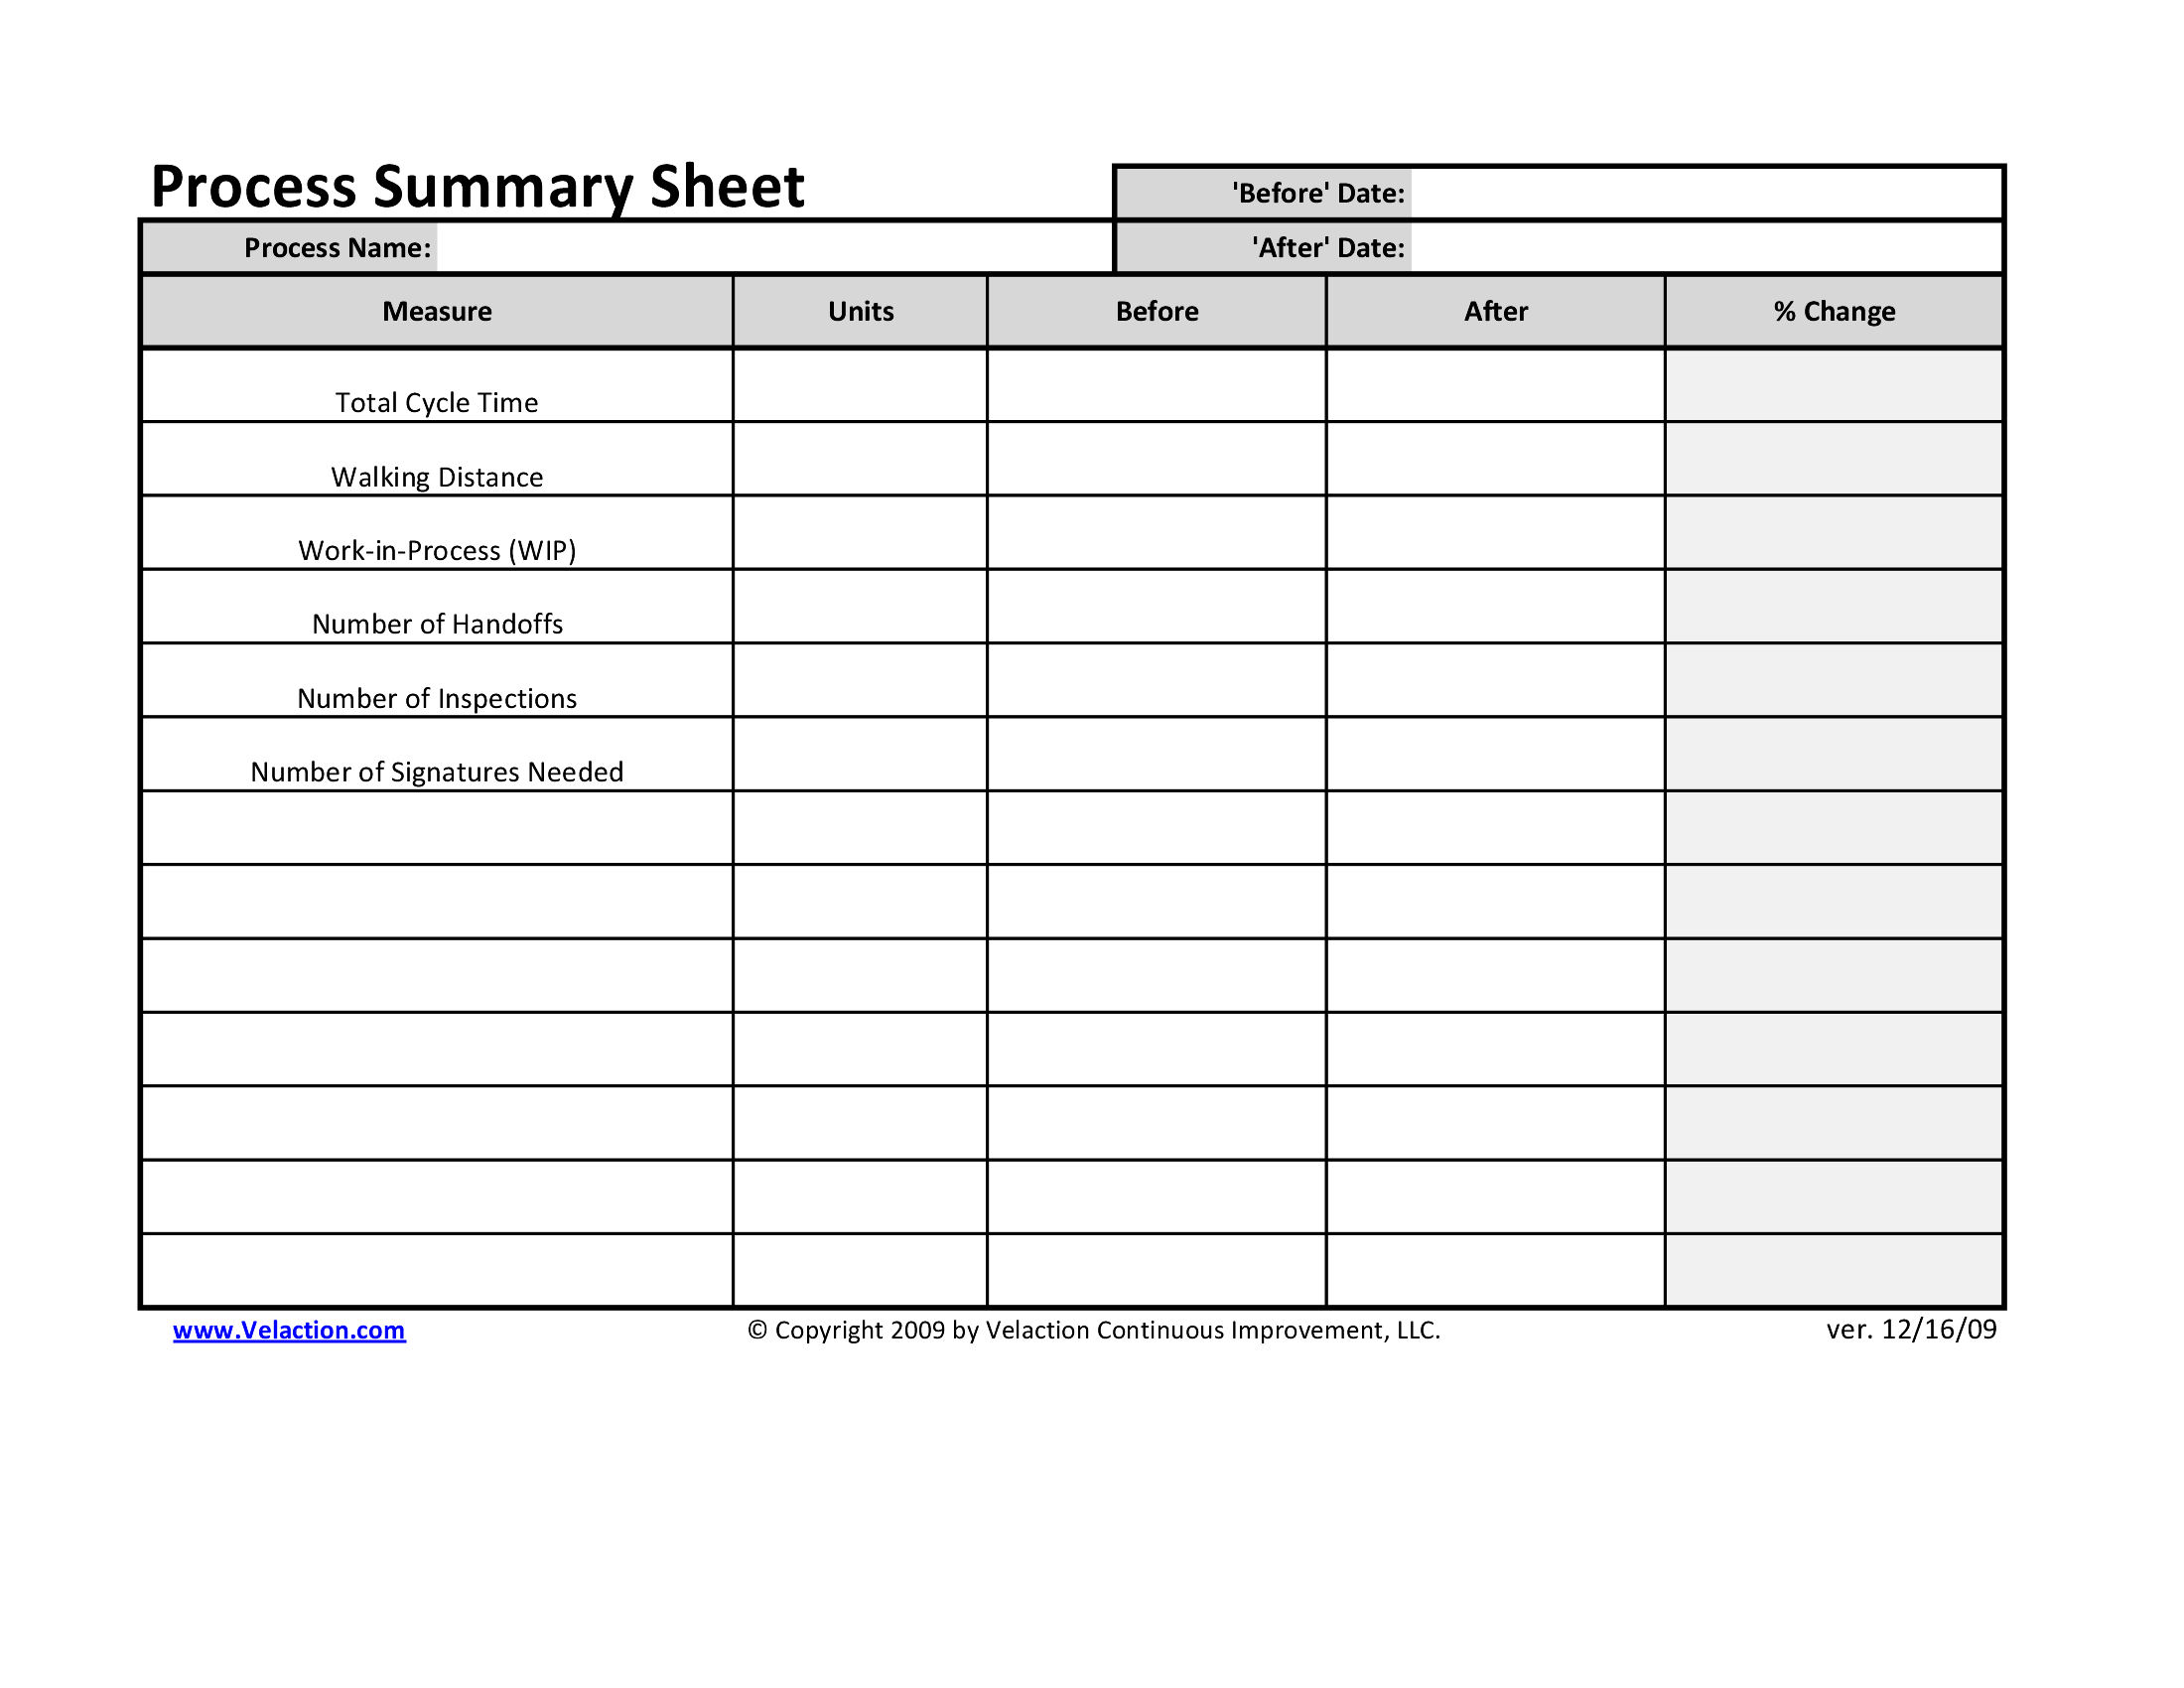 Office Process Summary Sheet